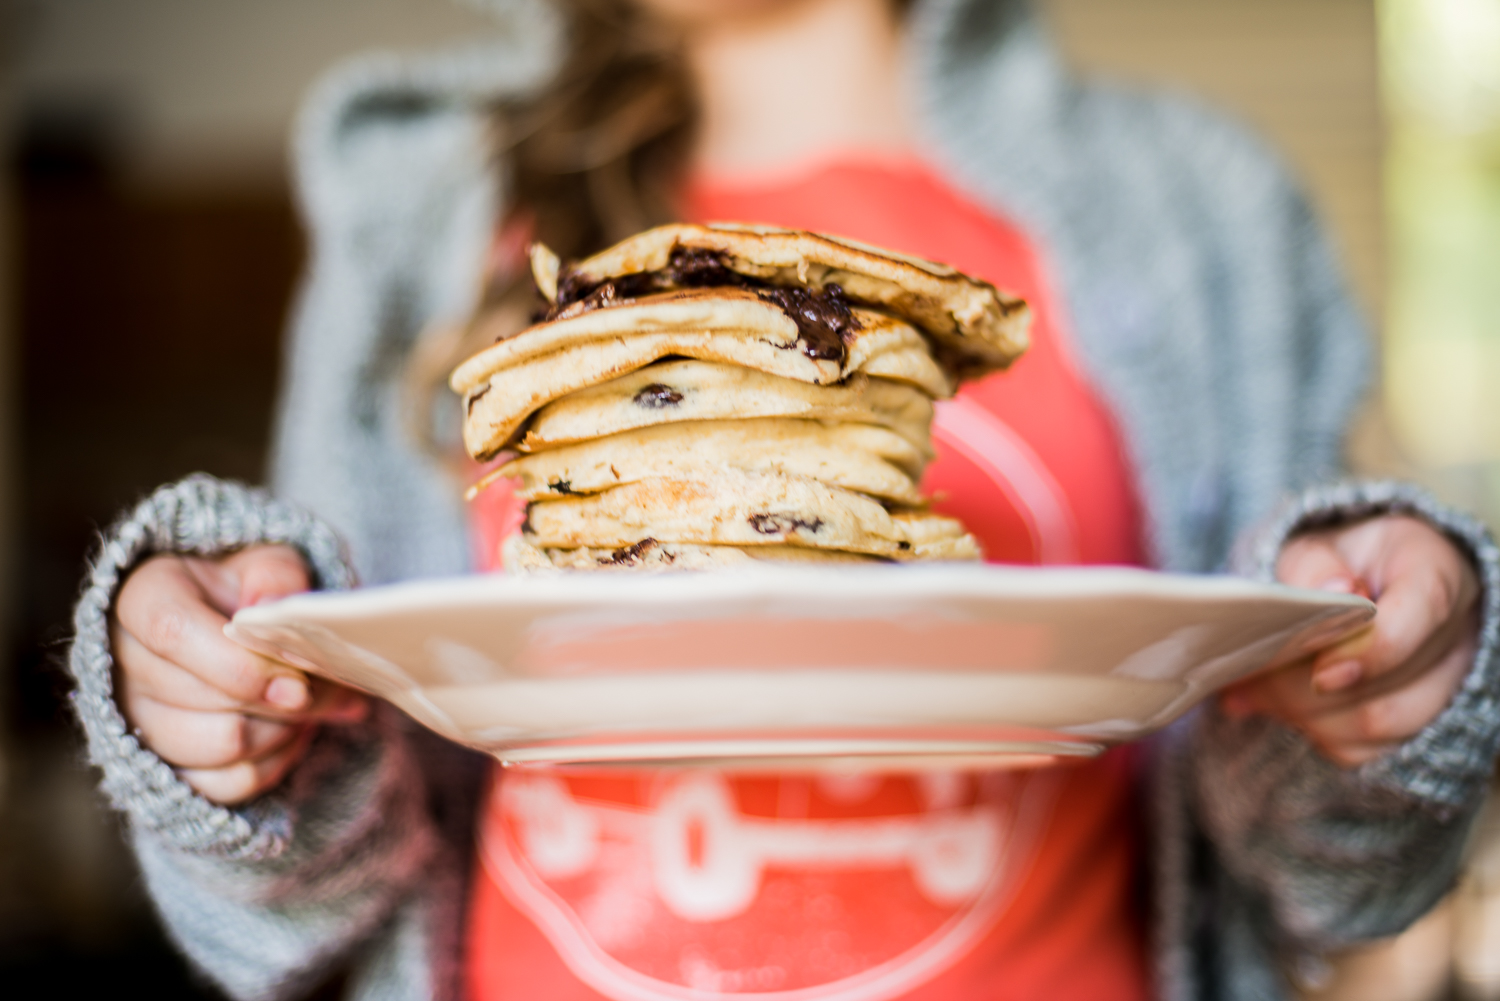 A girl proudly displays a stack of pancakes which she made for her family.